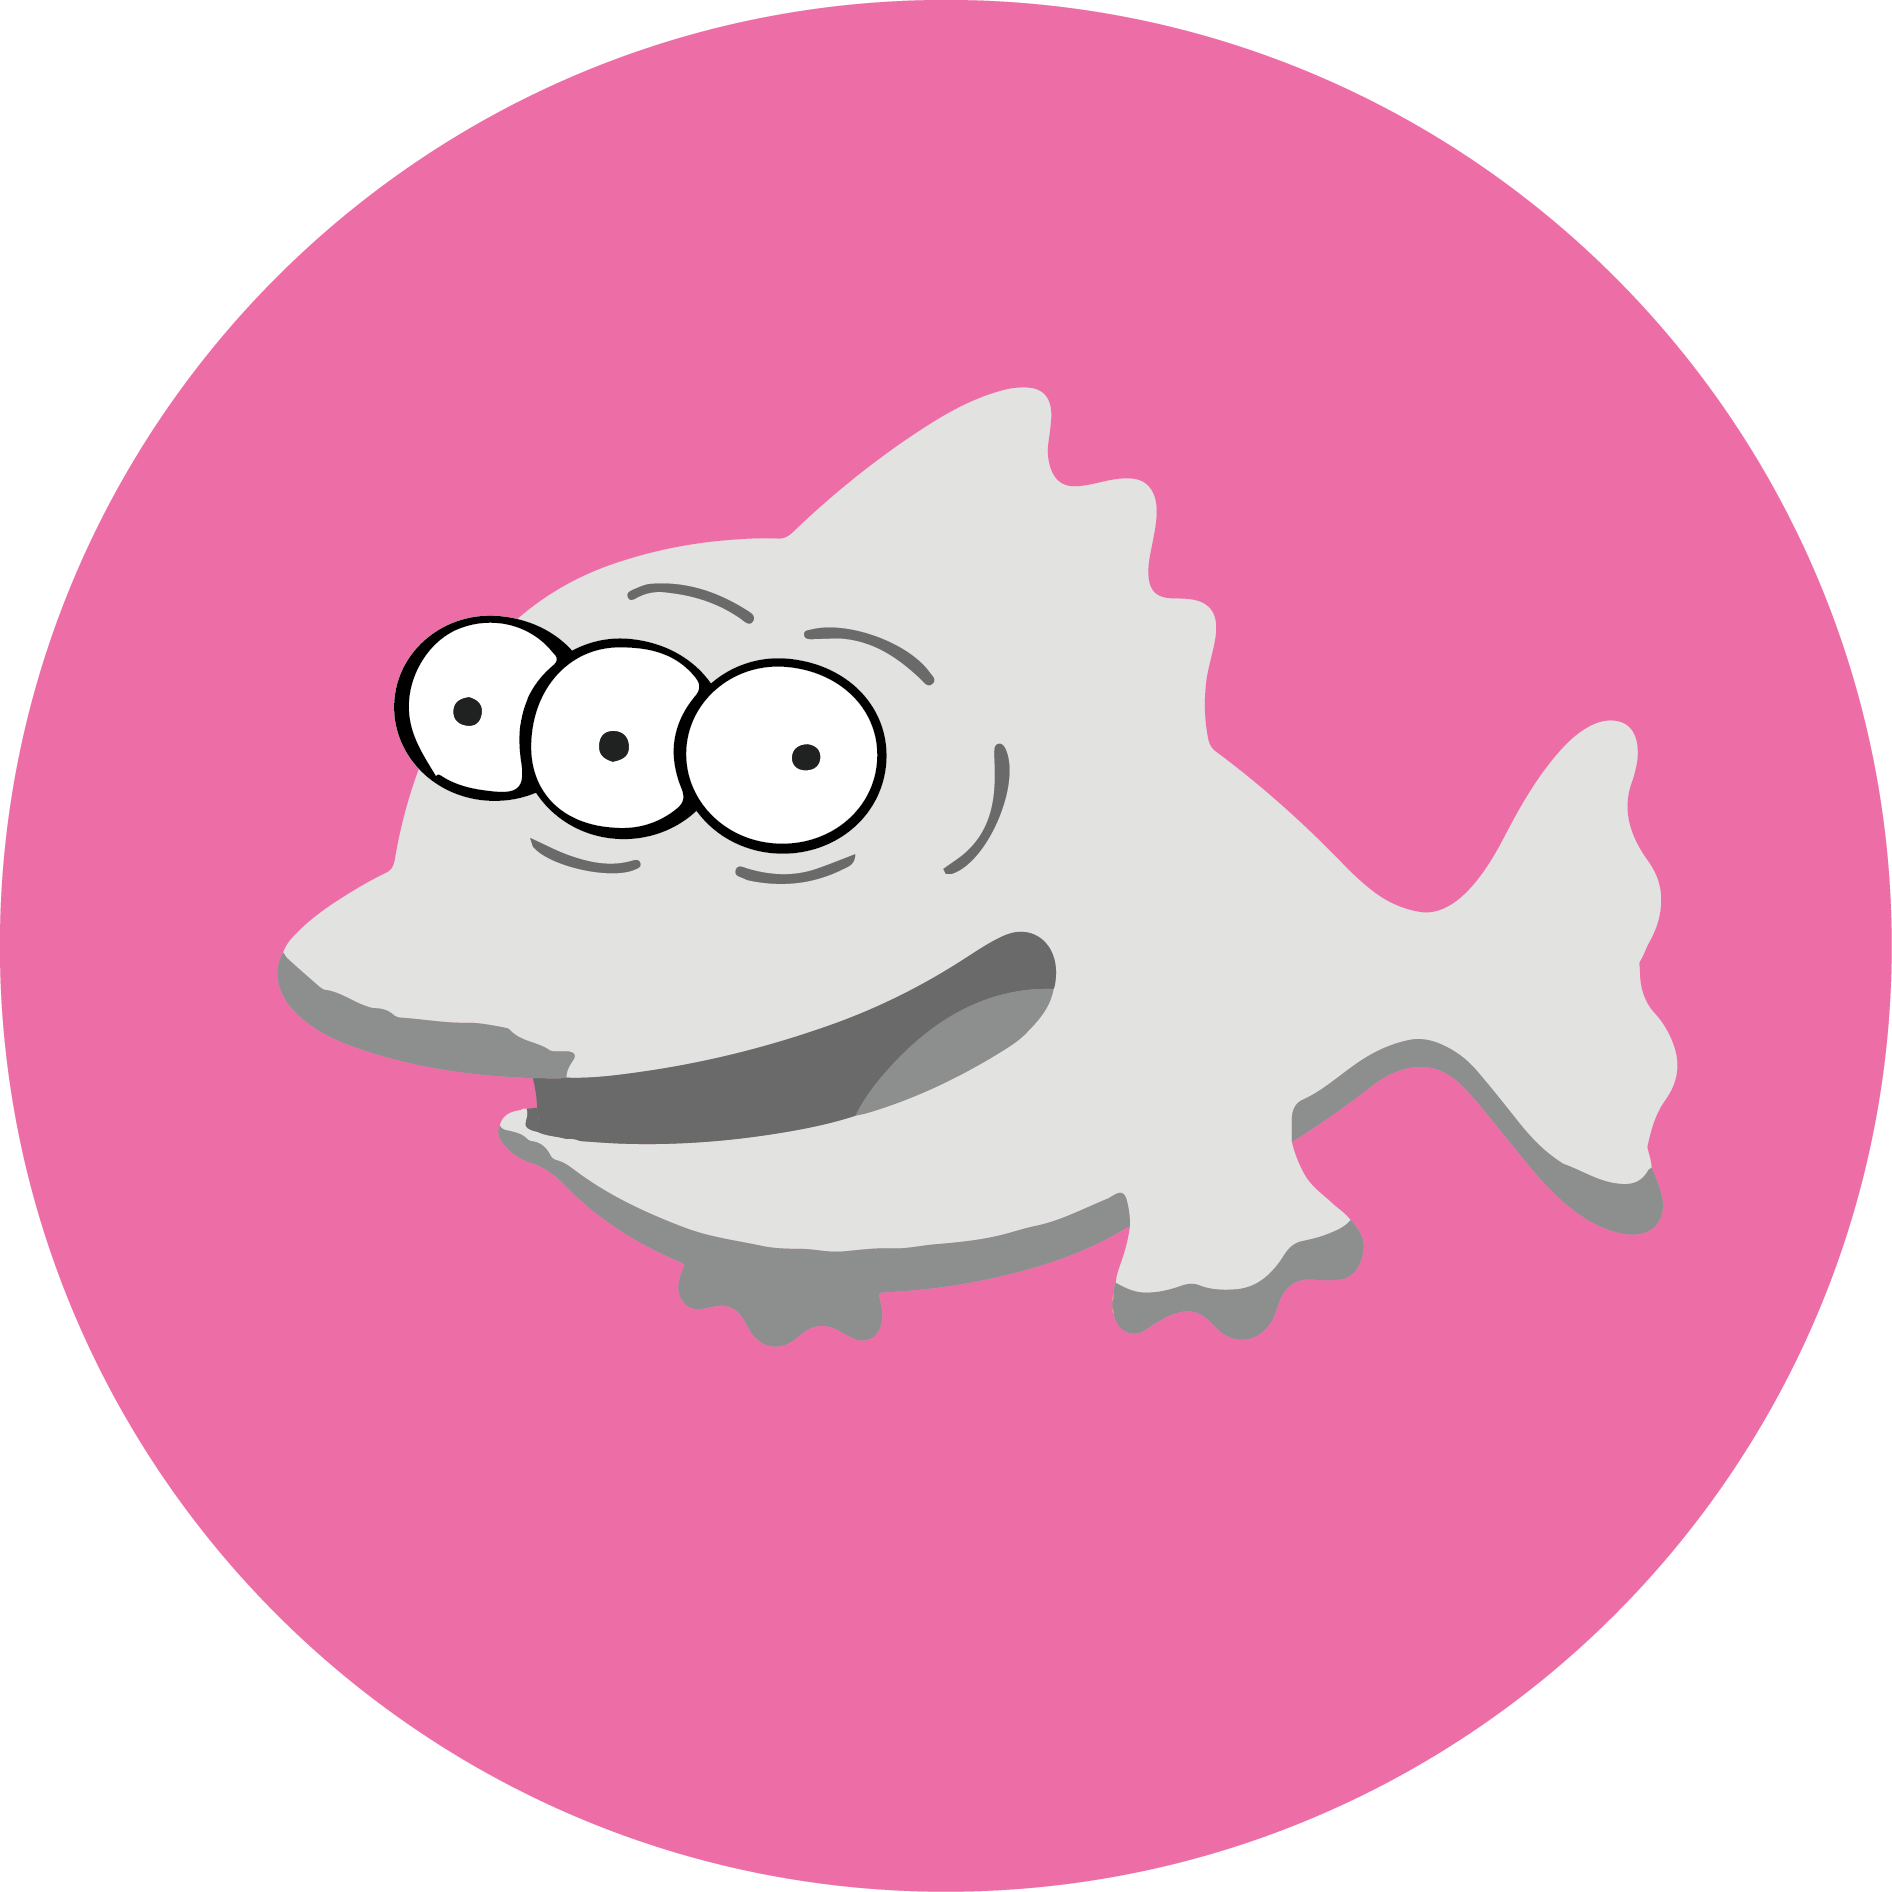 blinky-pink.png